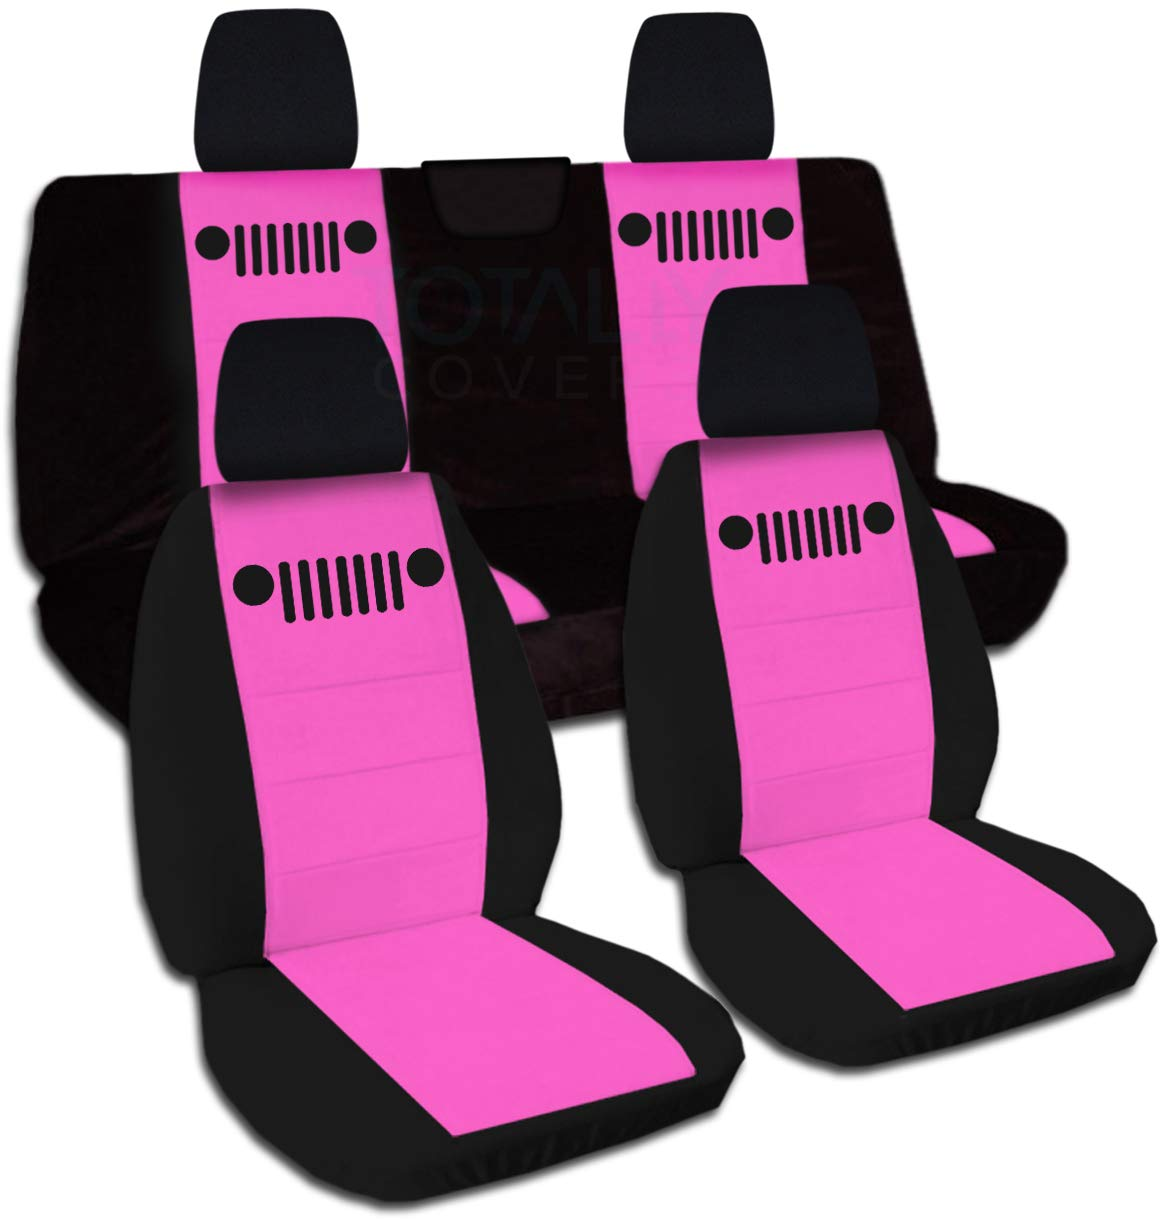 Totally Covers Fits 2018-2019 Jeep Wrangler JL Two-Tone Seat Covers: Black & Hot Pink - Full Set: Front & Rear (21 Colors) 2-Door/4-Door Solid/Split Bench Back w/wo Armrest/Headrest